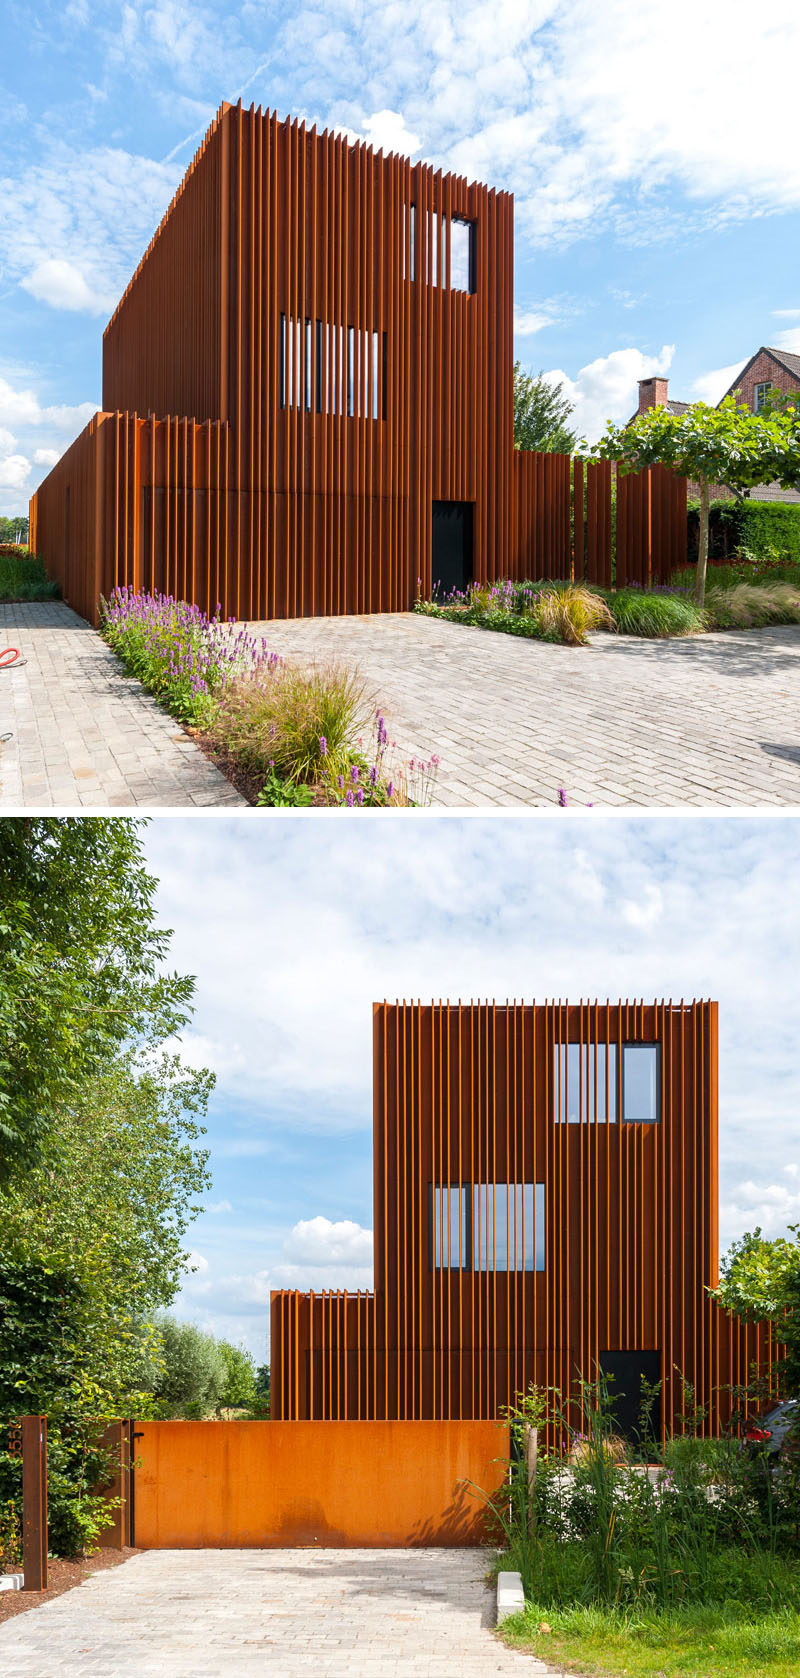 Strips of weathering steel placed on the exterior of this modern house provide privacy and add texture to a simple form.